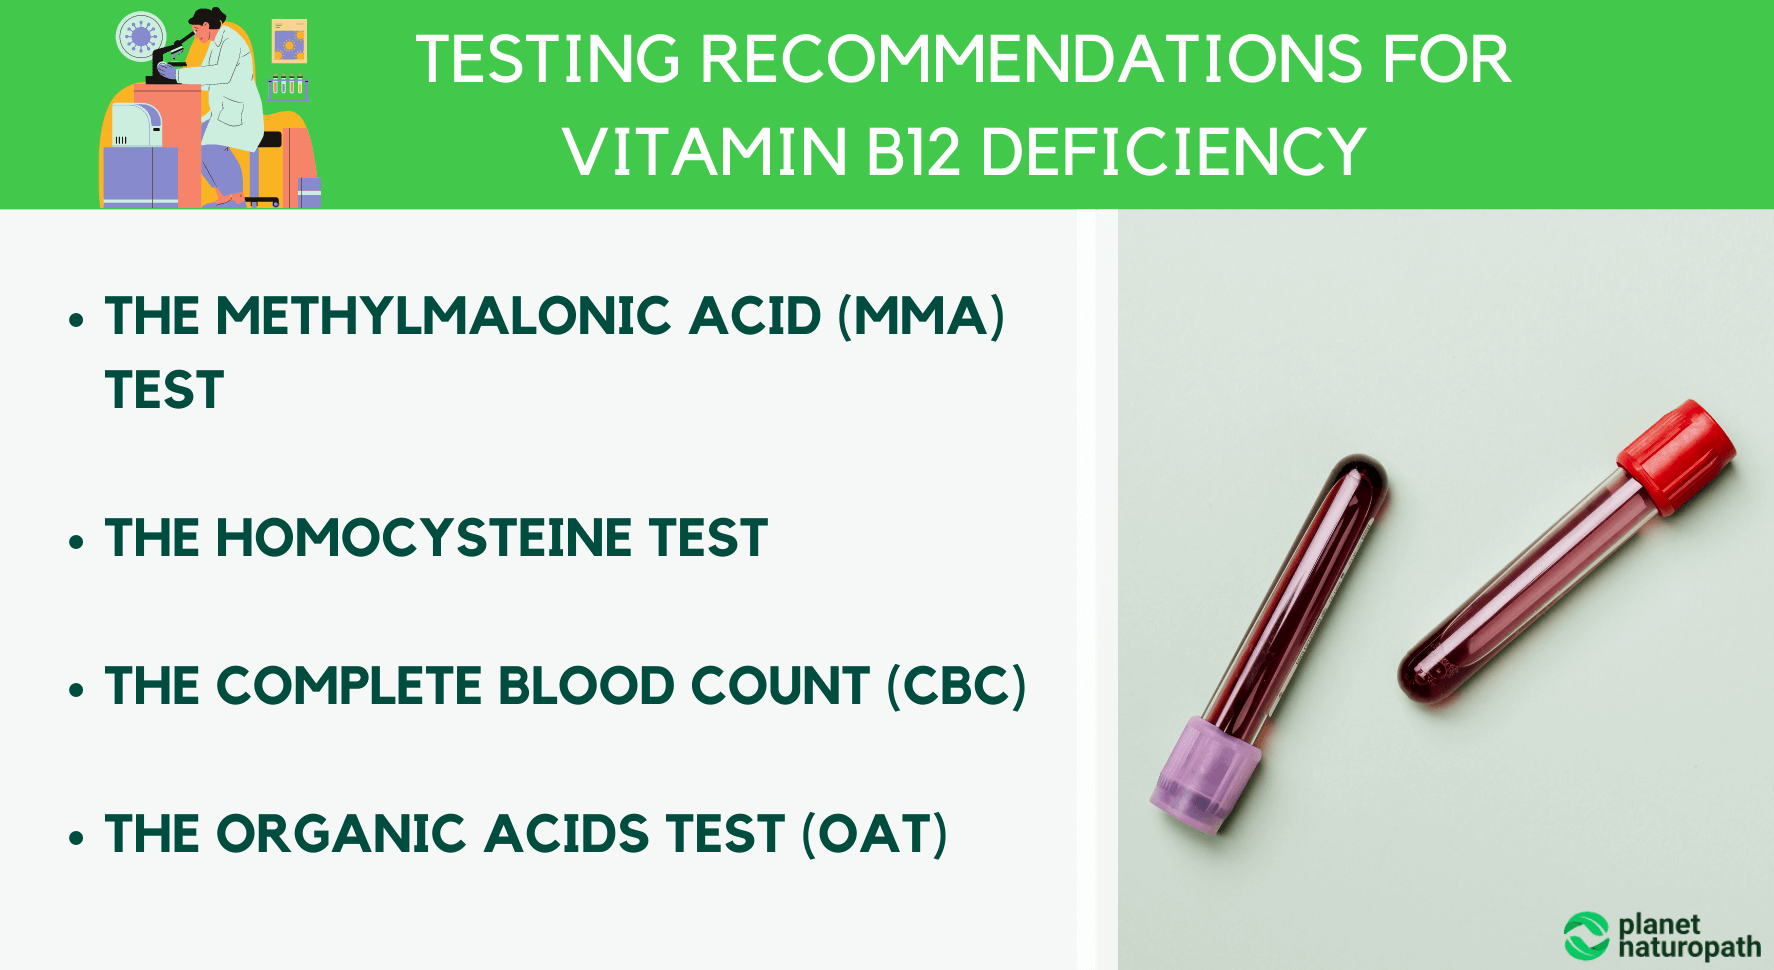 Testing recommendations for vitamin B12 deficiency